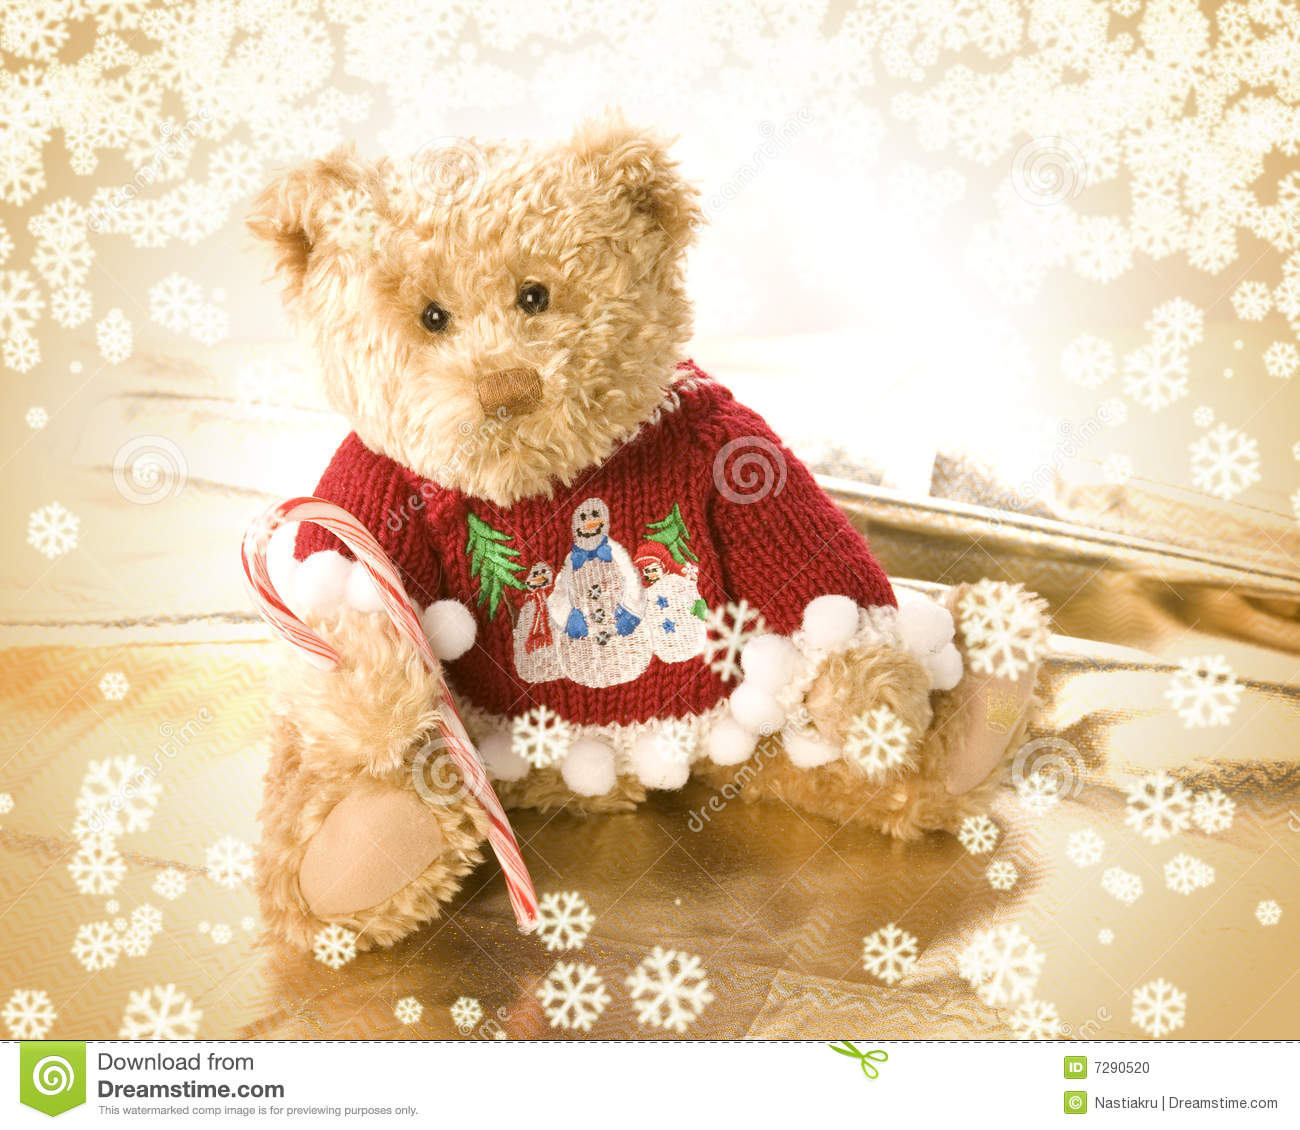 Cute Teddy Bears Cards Free Cute Teddy Bears Wishes